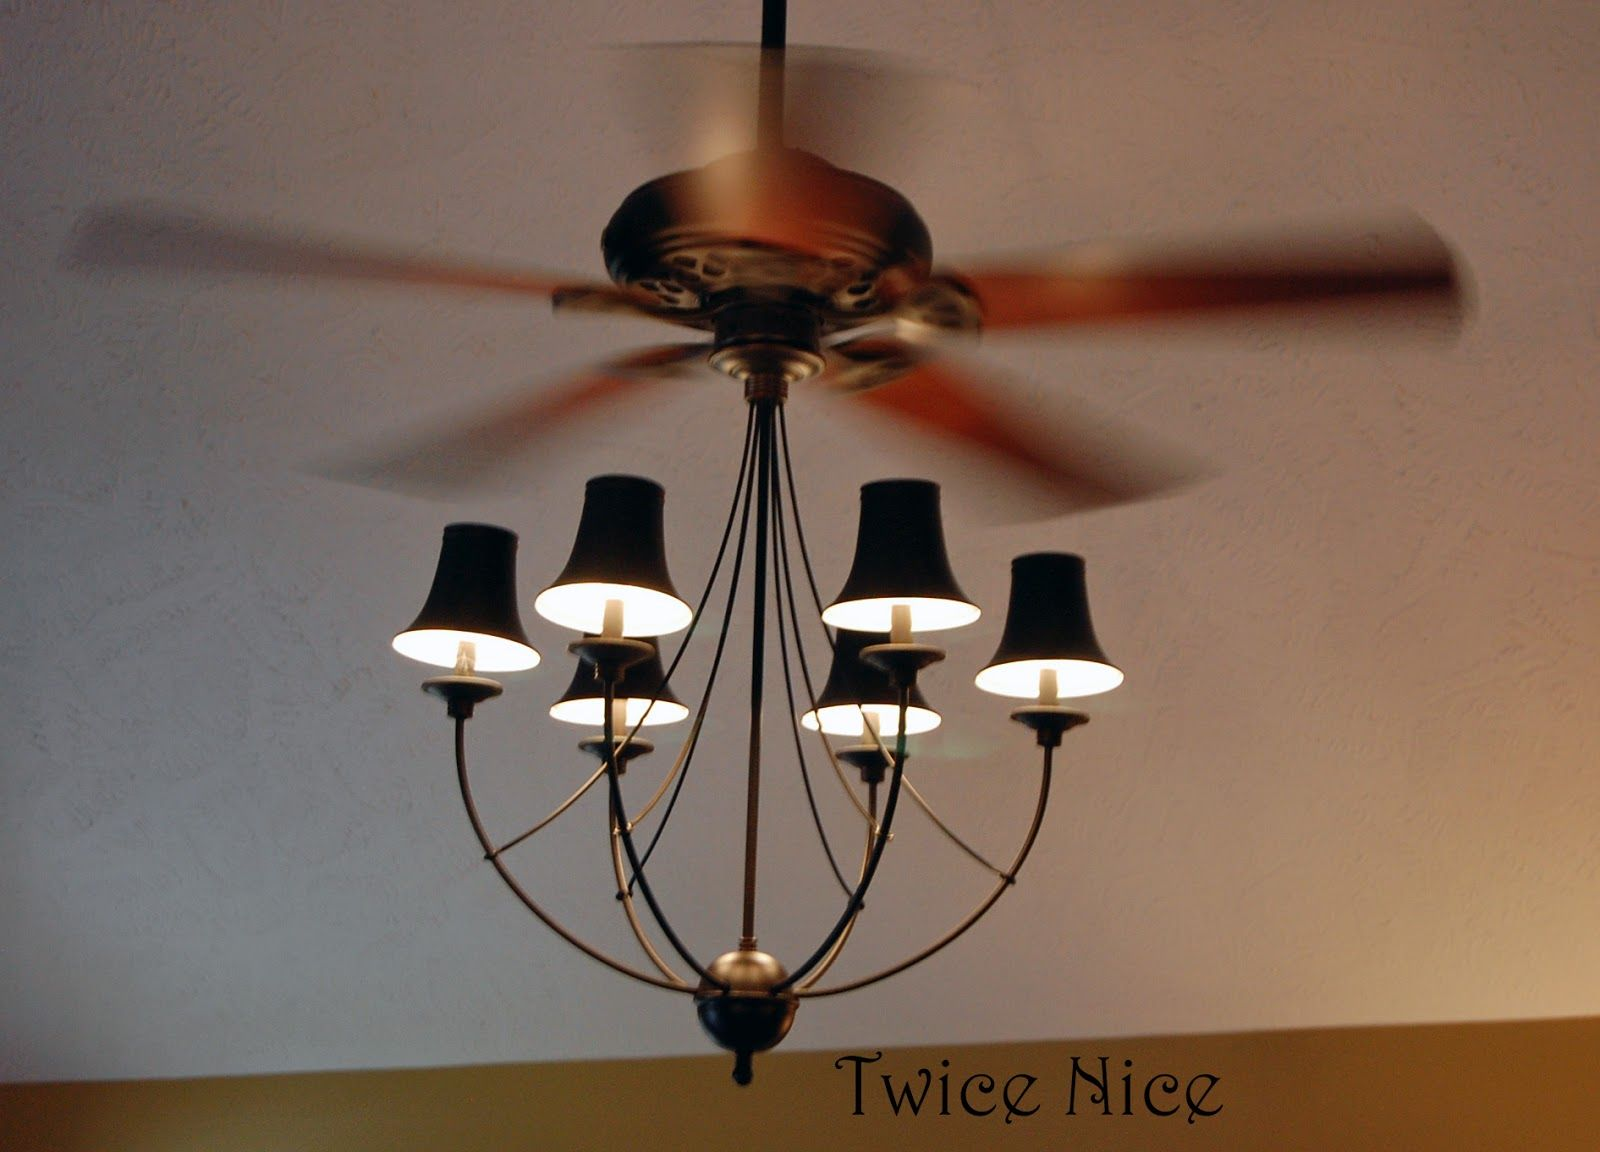 Decorative Chandelier Ceiling Fan With Lights Modern ceiling